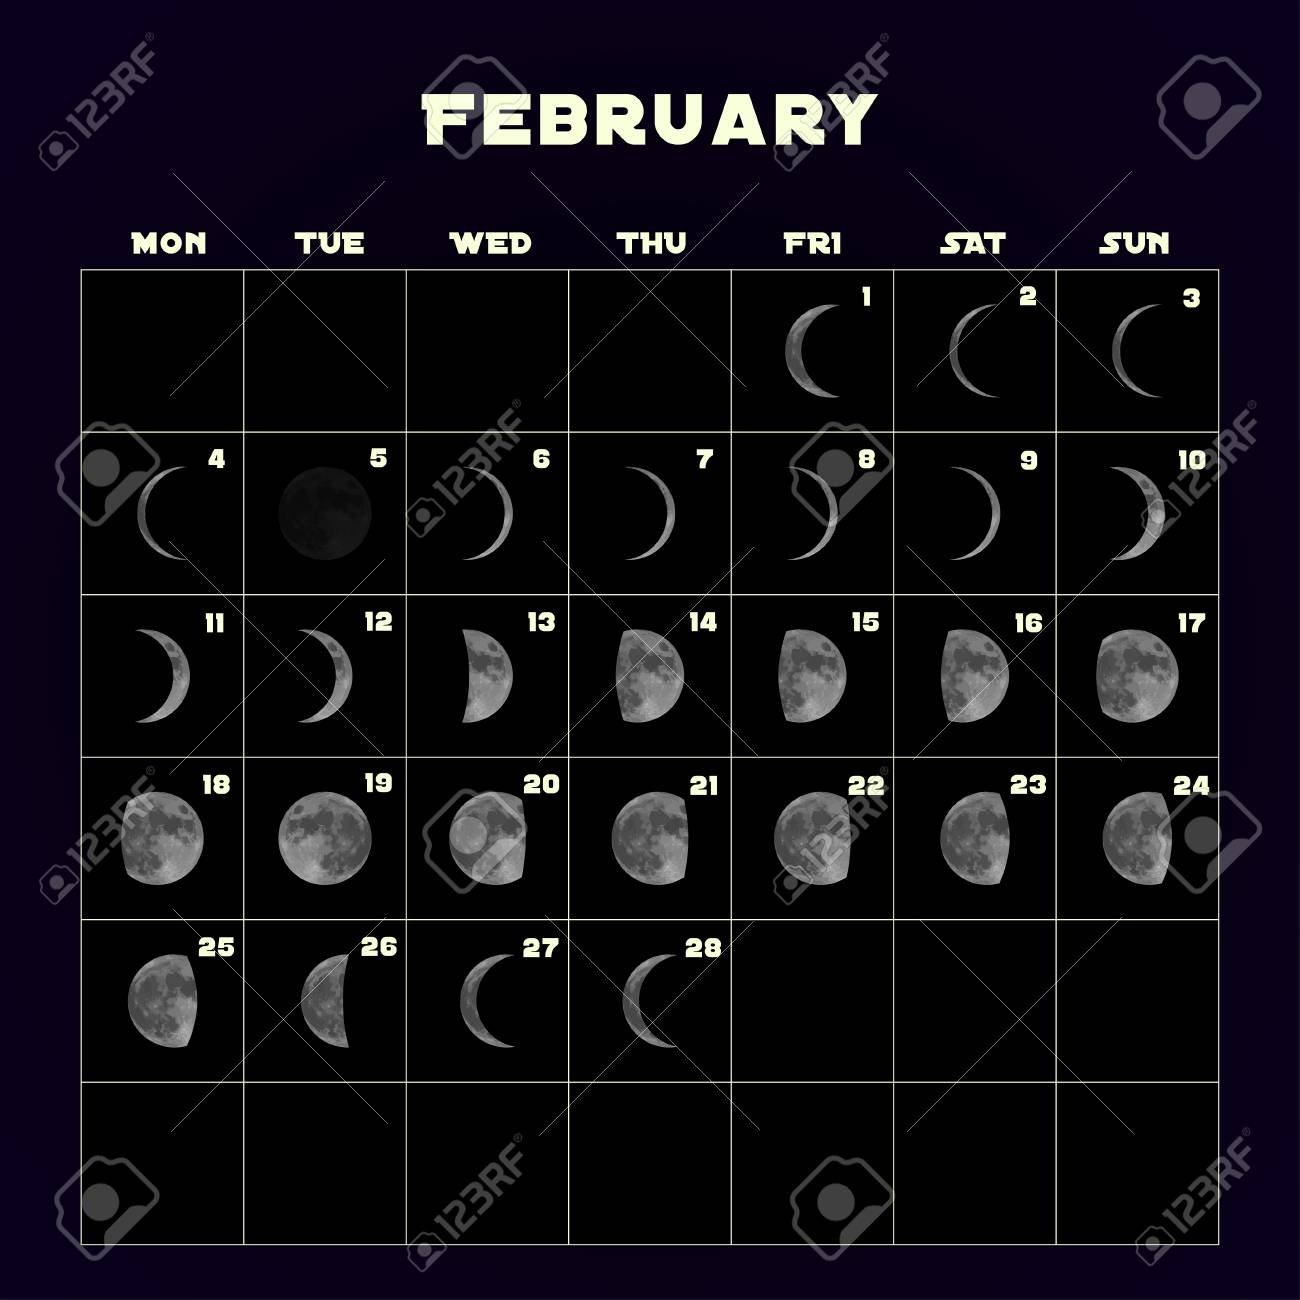 Moon Phases Calendar For 2019 With Realistic Moon. February Stock Calendar 2019 With Moon Phases